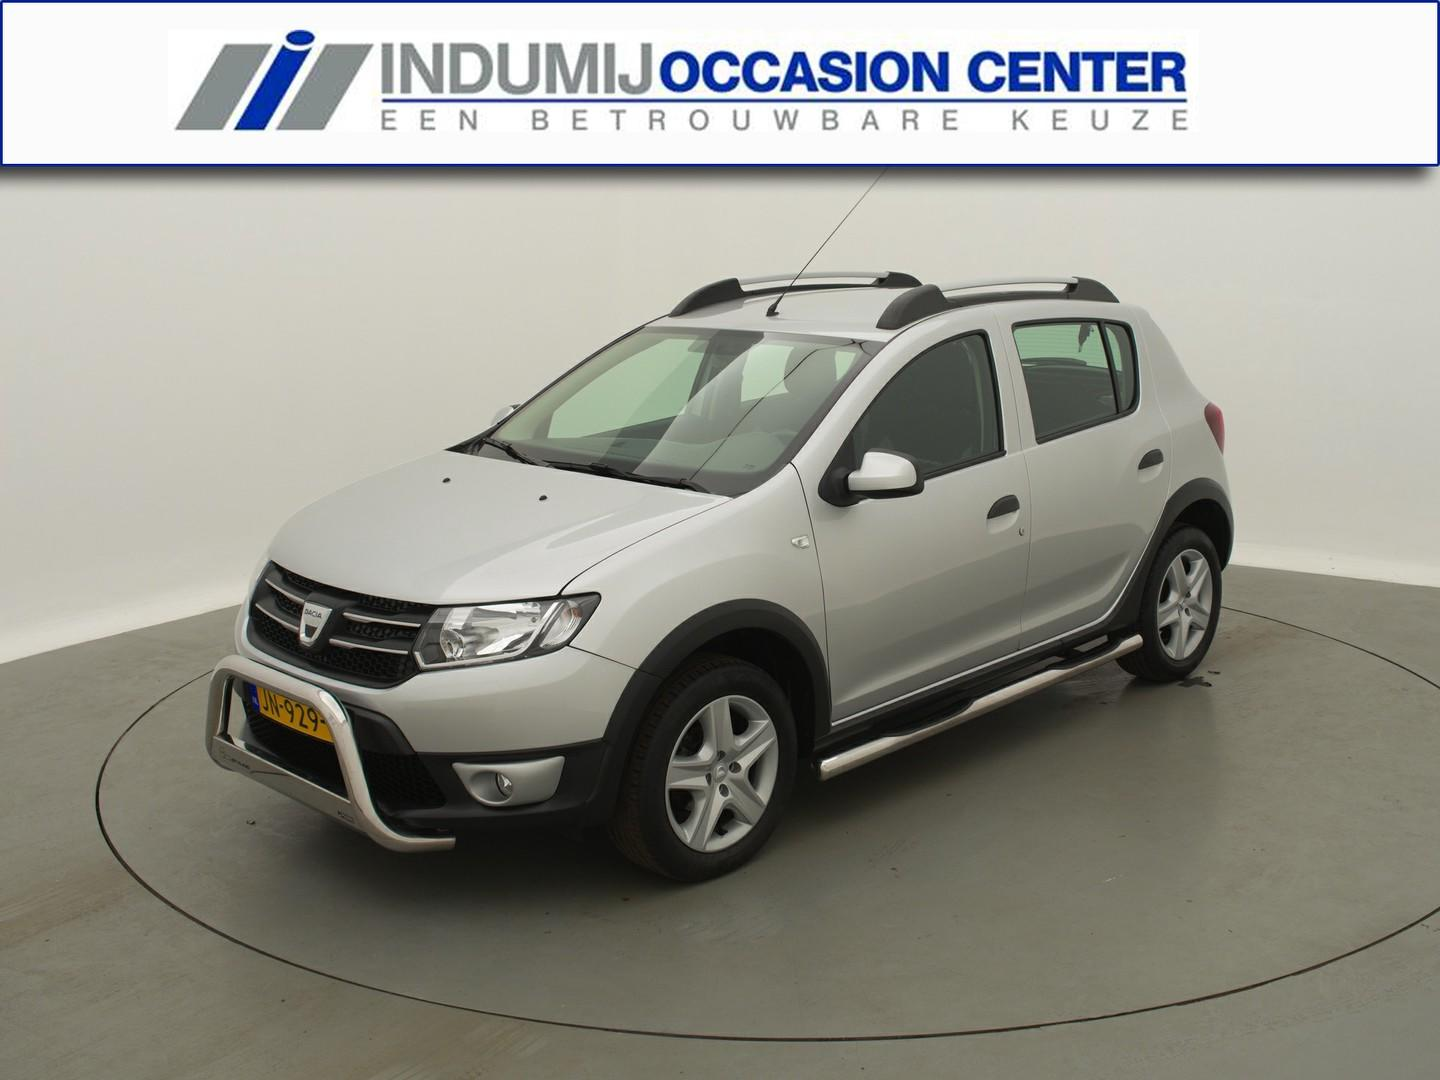 Dacia Sandero Tce 90 easy-r stepway lauréate // automaat / bull-bar /stoere auto!